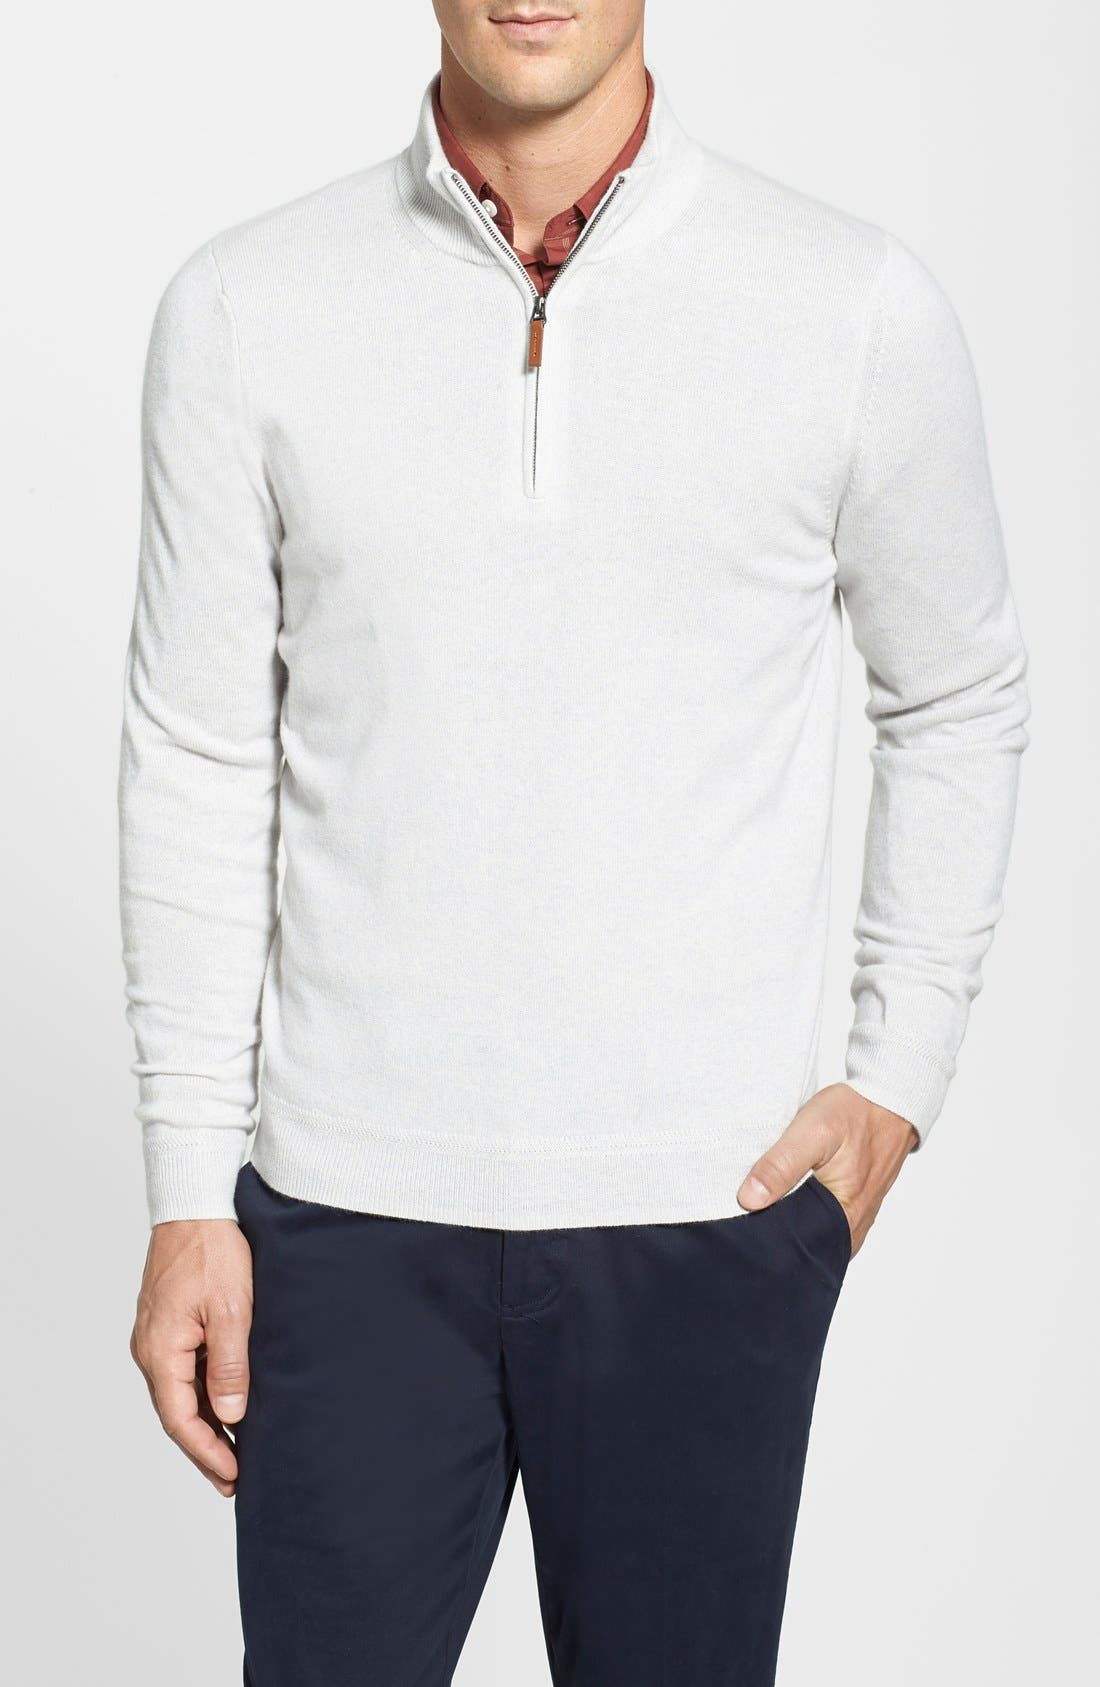 Alternate Image 1 Selected - John W. Nordstrom® Half Zip Cashmere Sweater